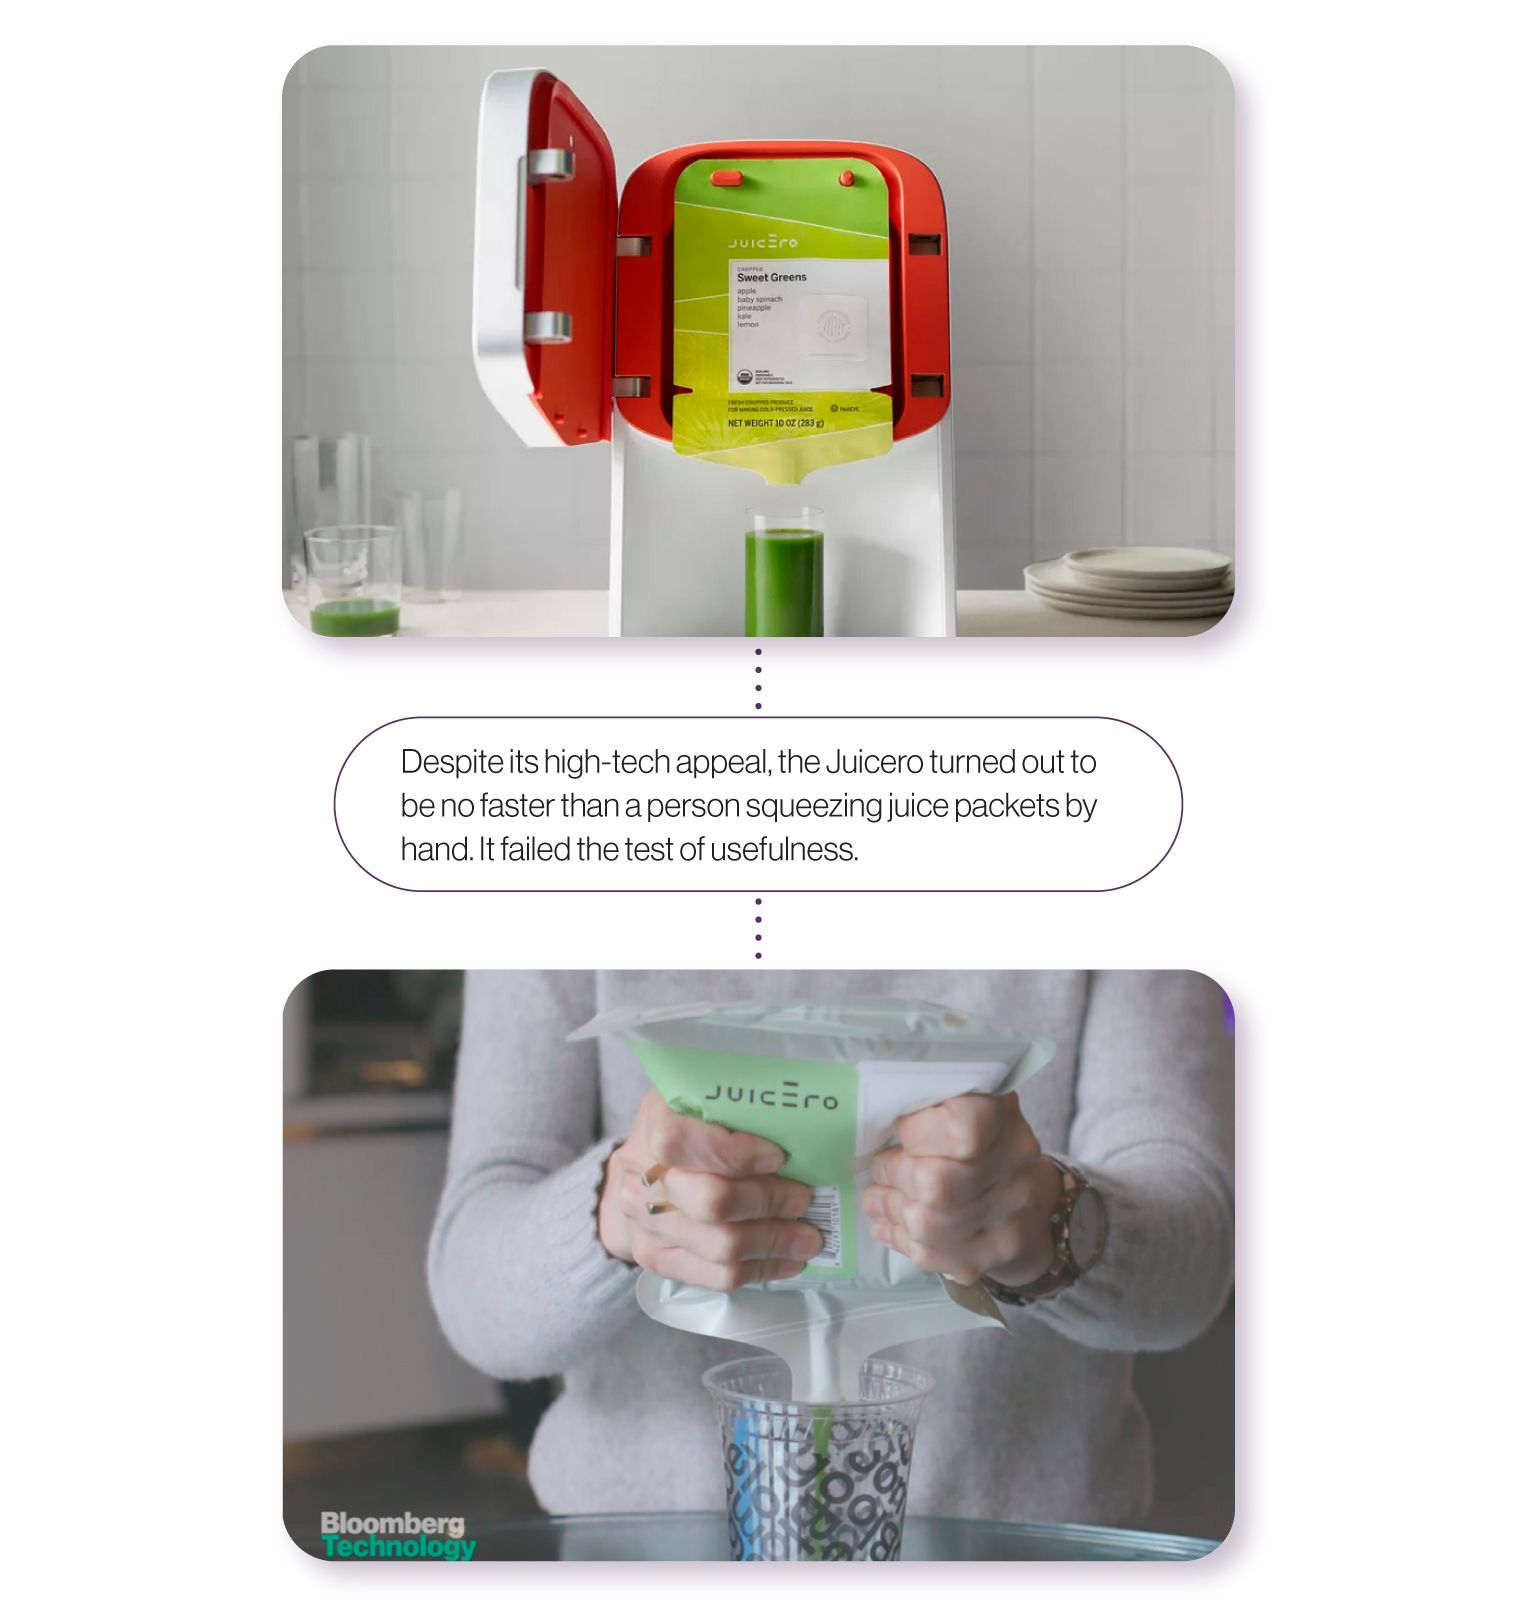 Image: An image of the Juicero jucicer, alongside a still from the Bloomberg video putting it to the test. Despite its high-tech appeal,the Juicero turned out to be no faster than a person squeezing juice packets by hand. It failed the test of usefulness.